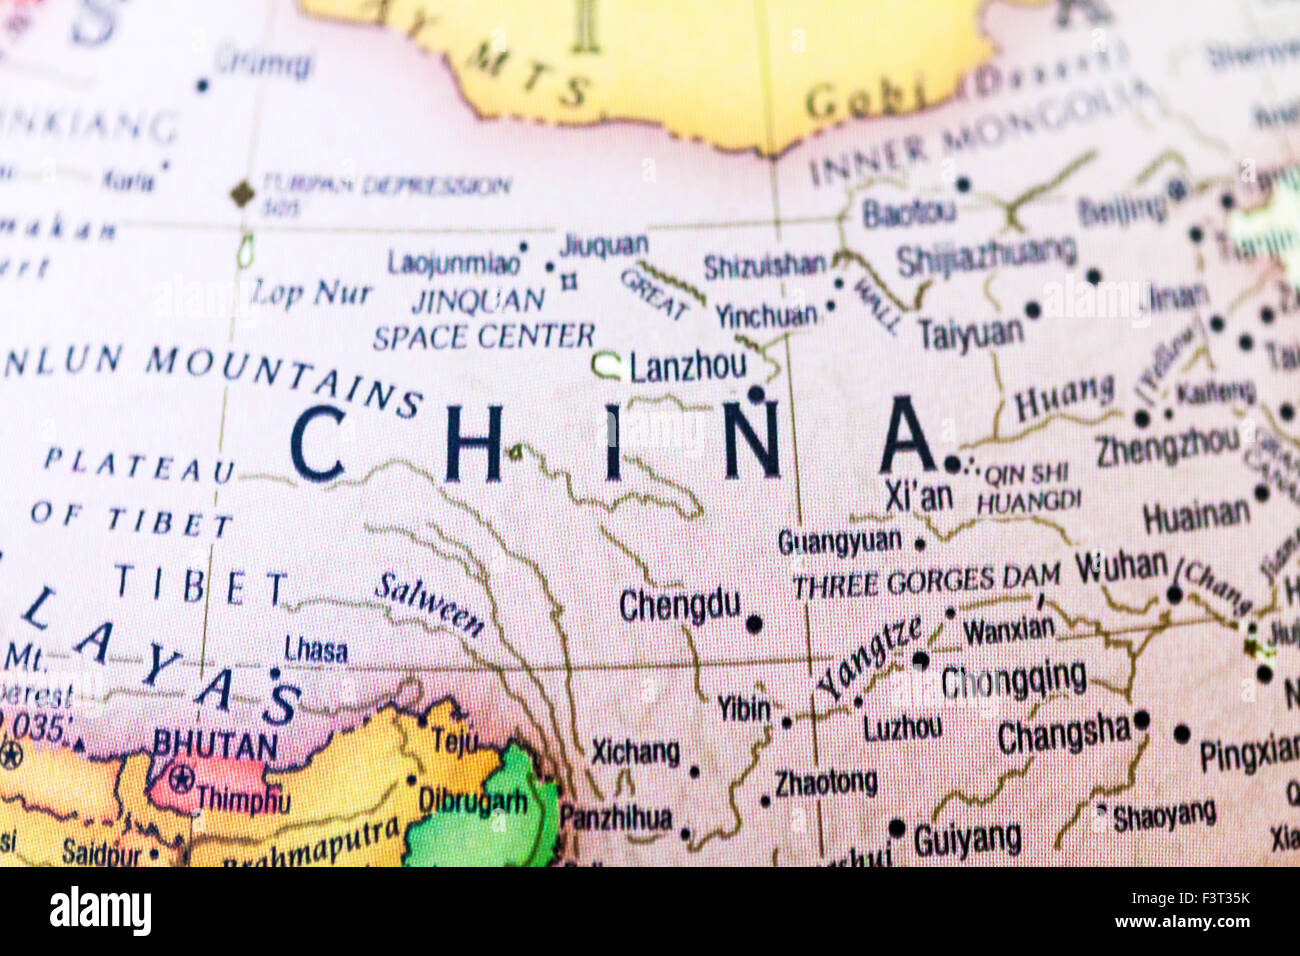 China provinces map atlas country view regions cities name names words - Stock Image